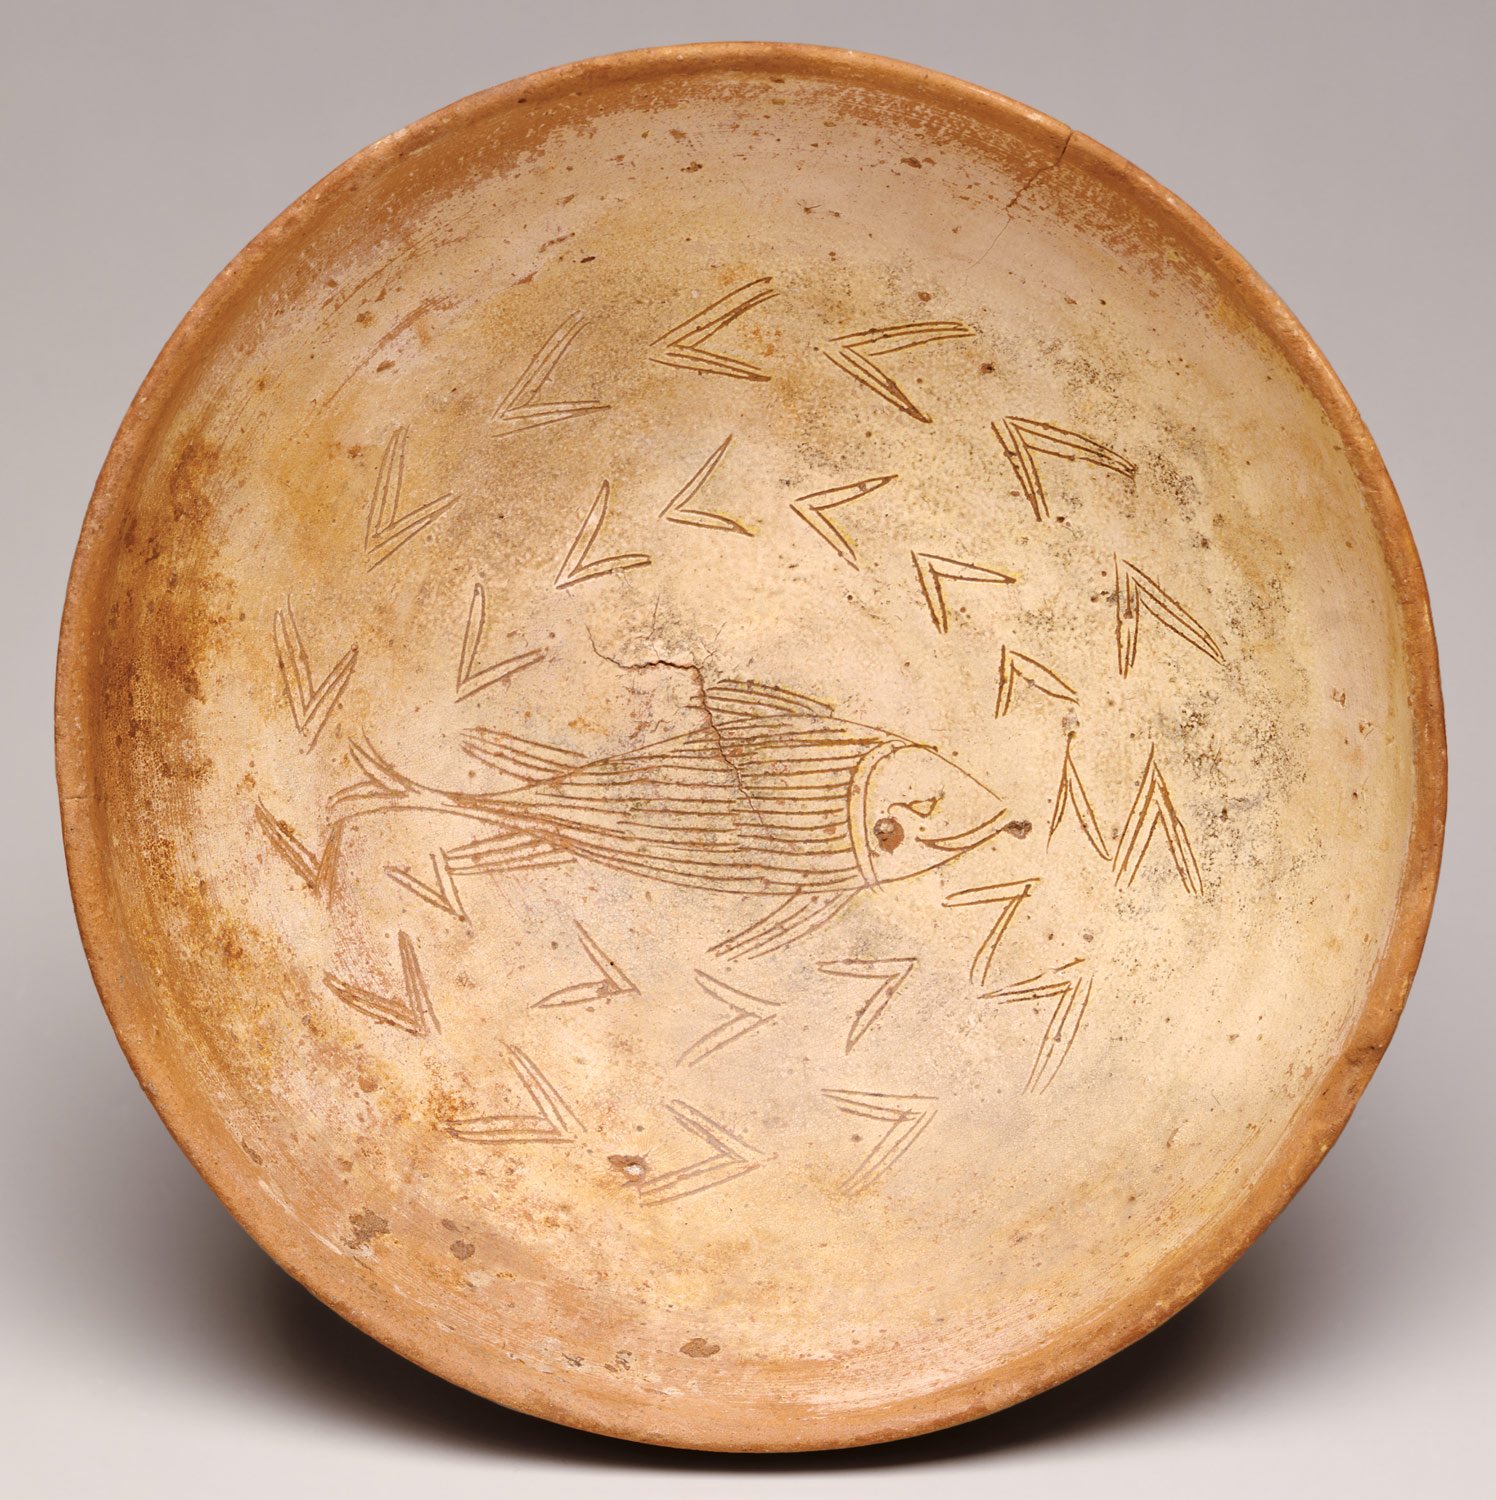 Bowl with Fish